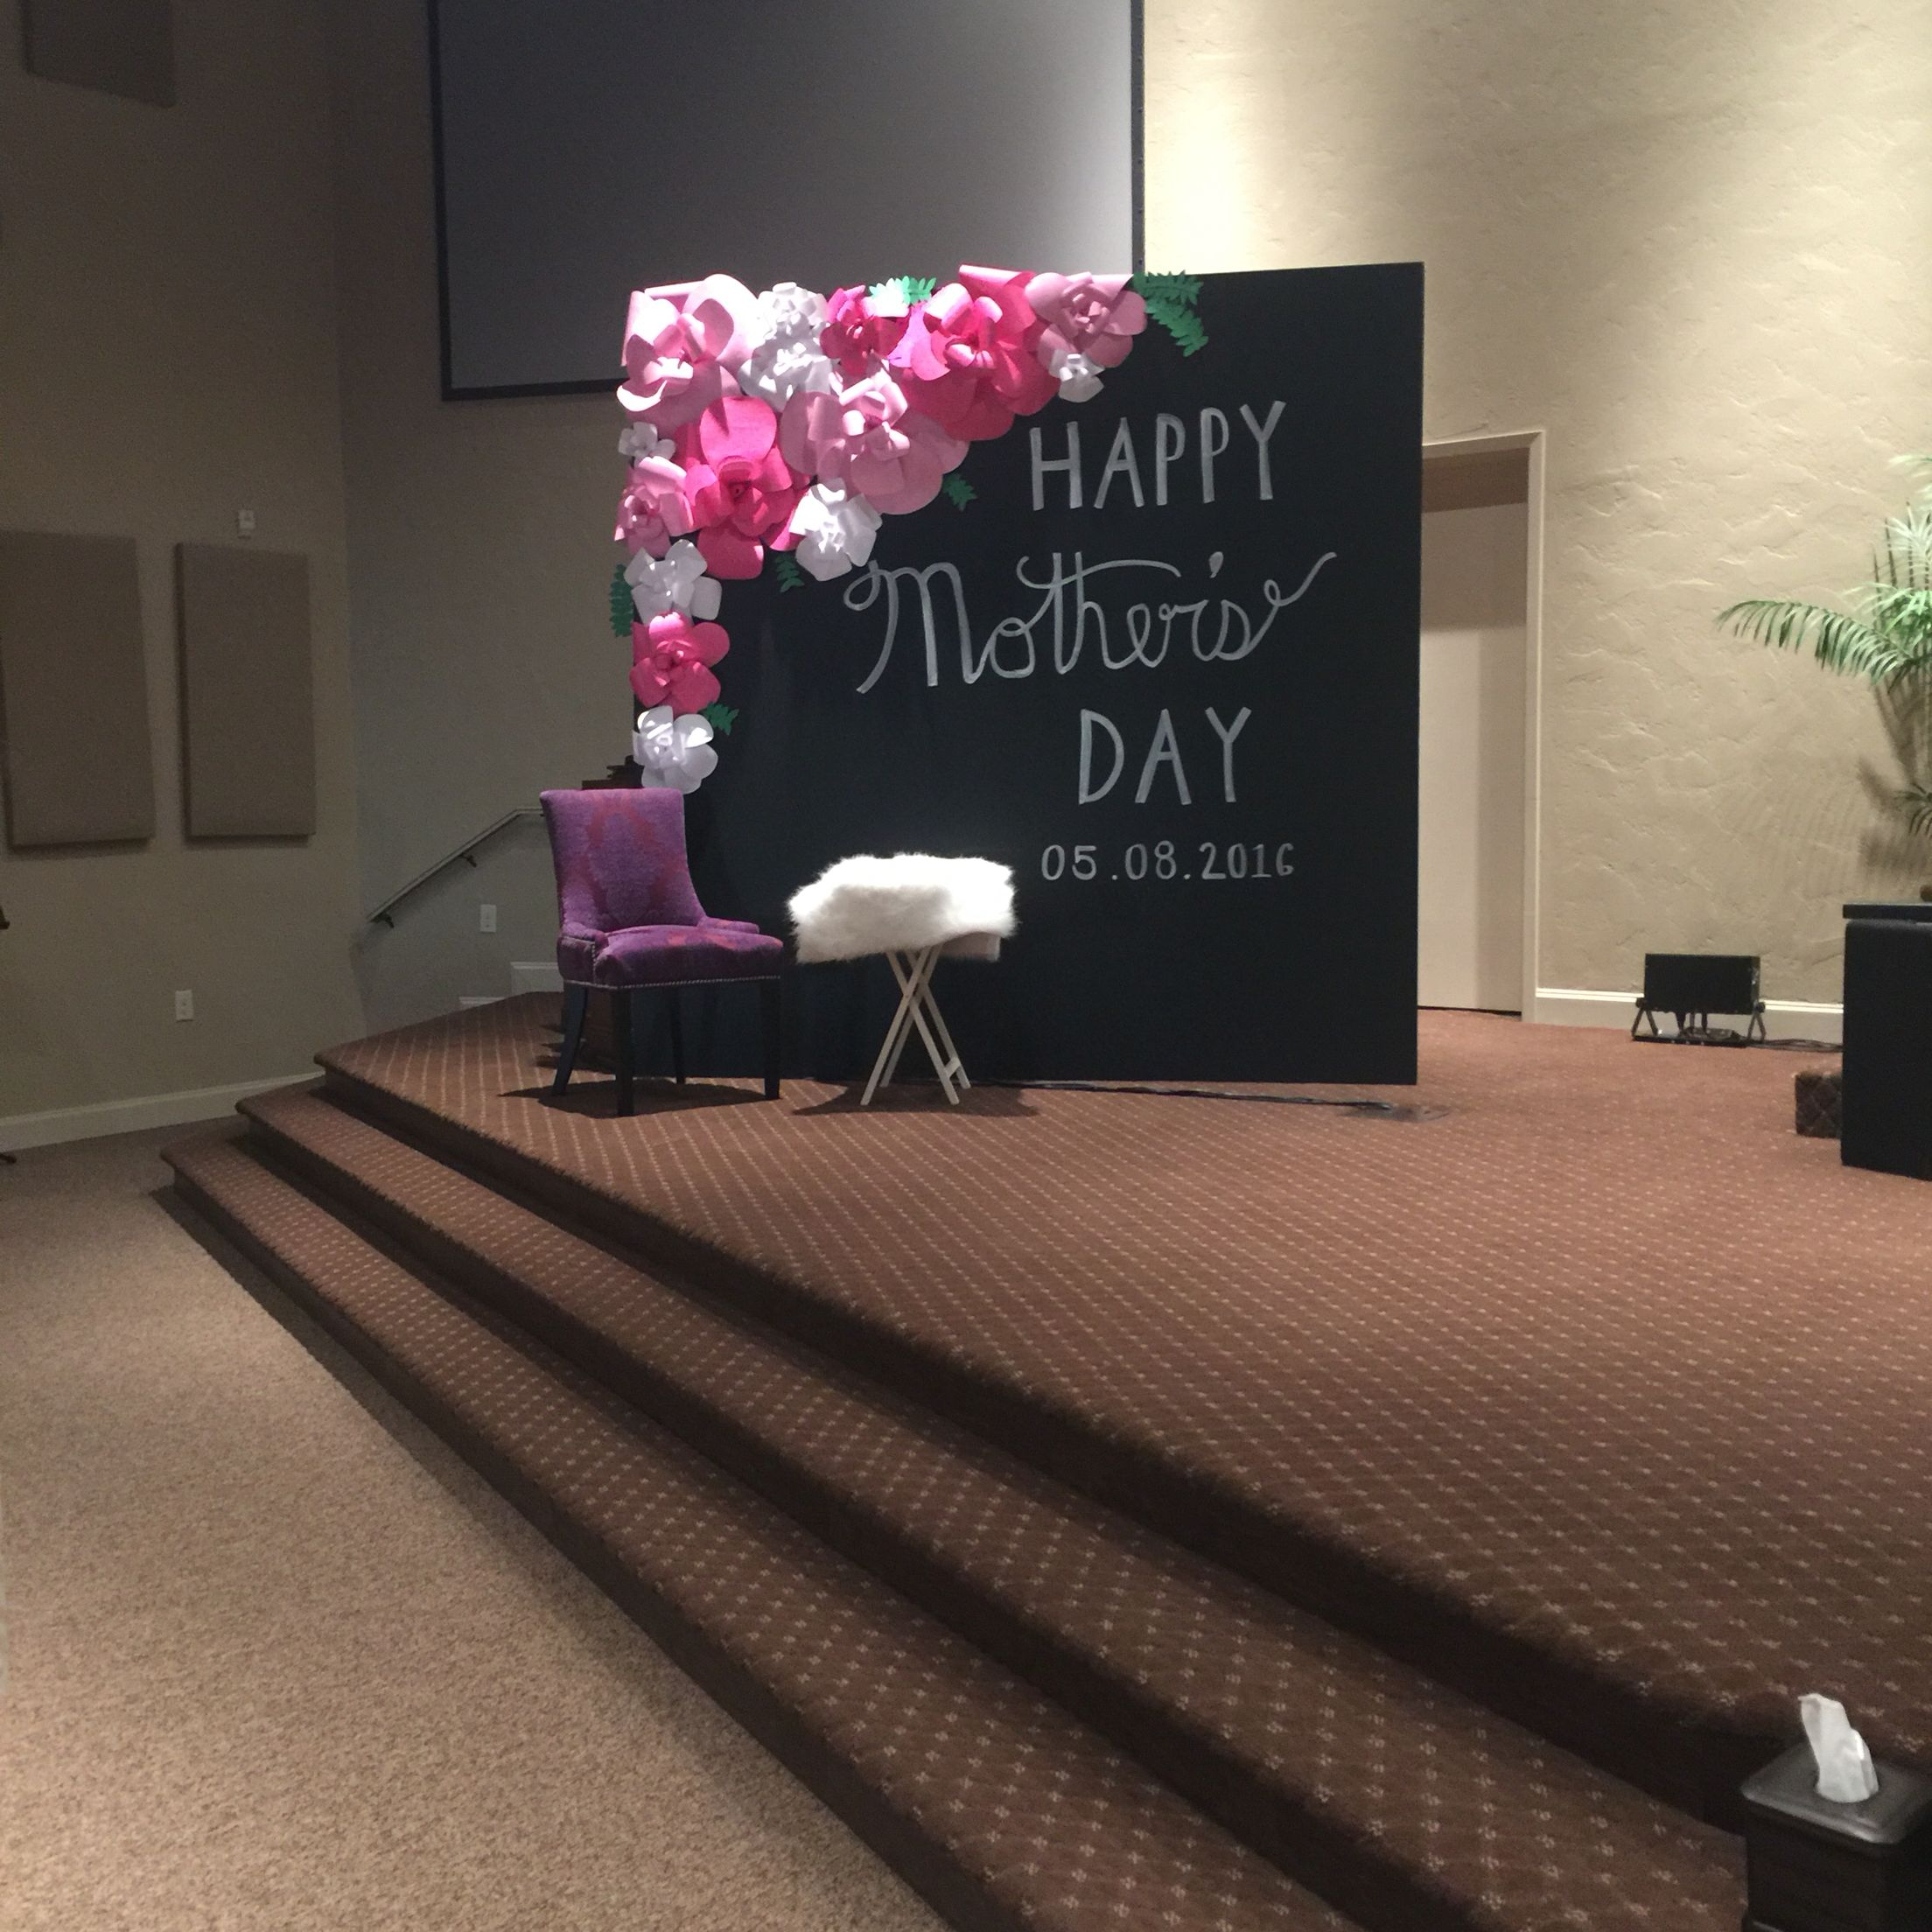 mothers day church stage design 2016 | church gifts | church stage